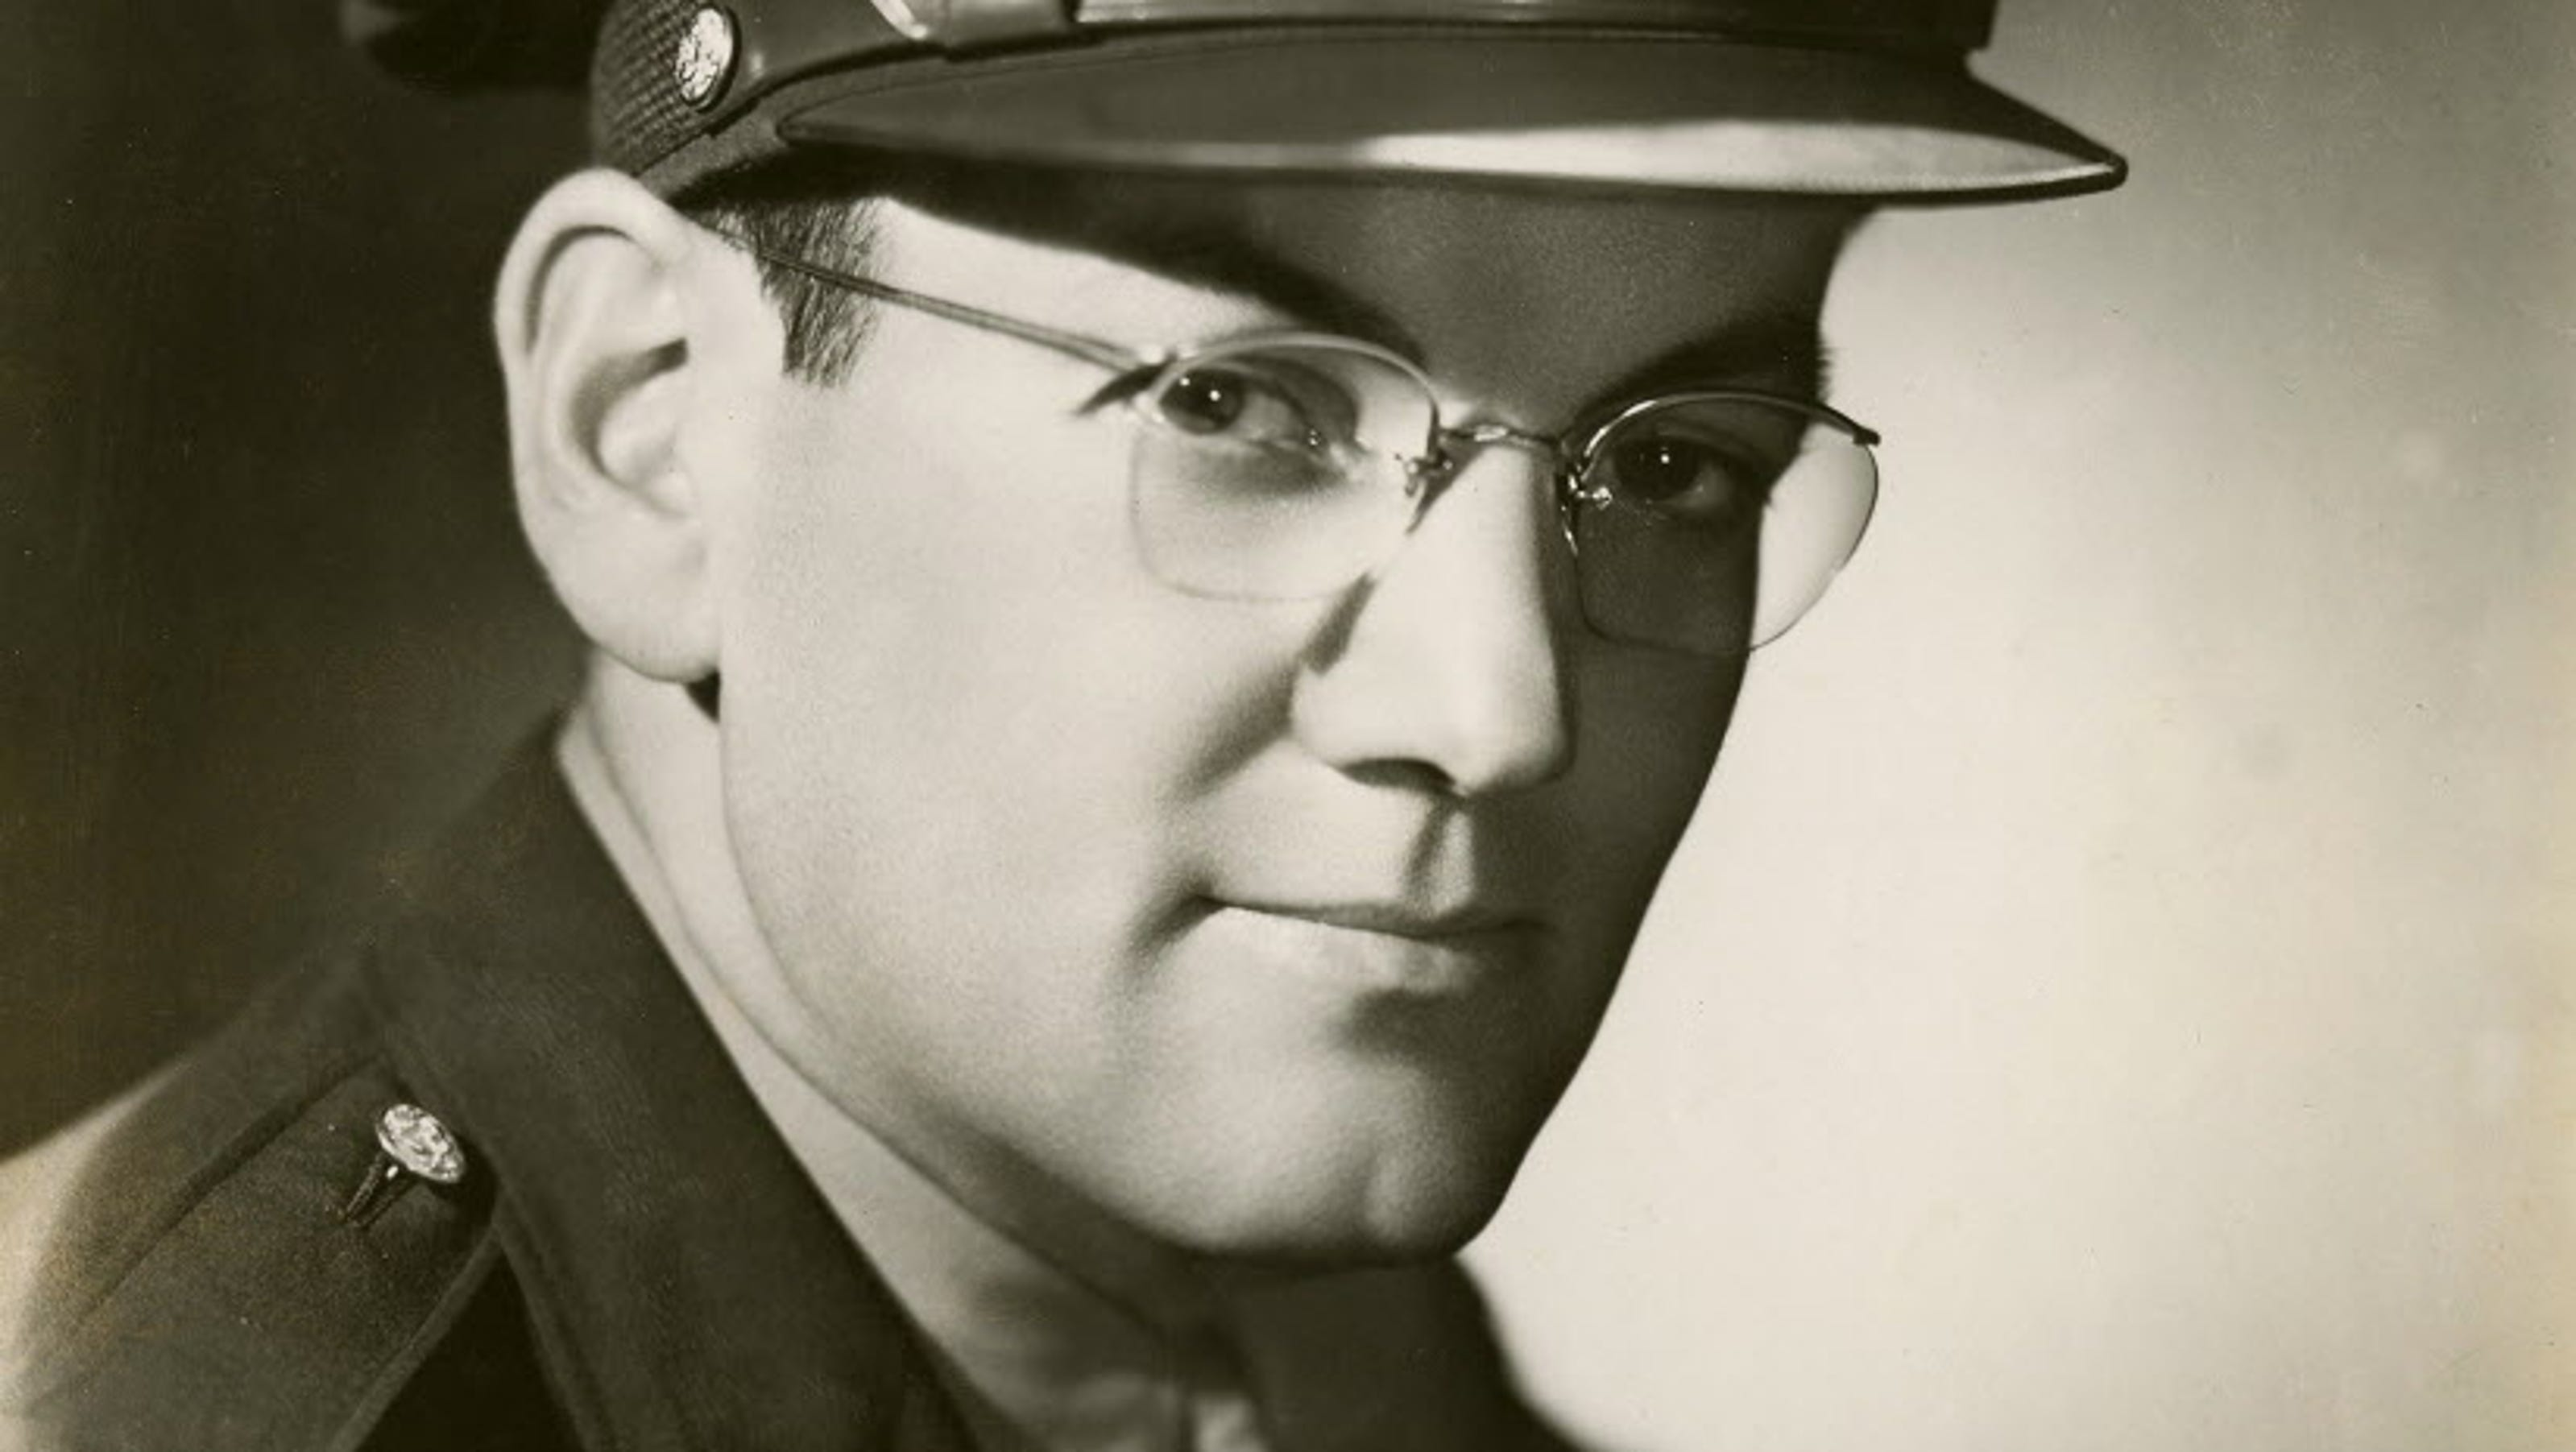 Glenn Miller's plane mystery revived after 70 years